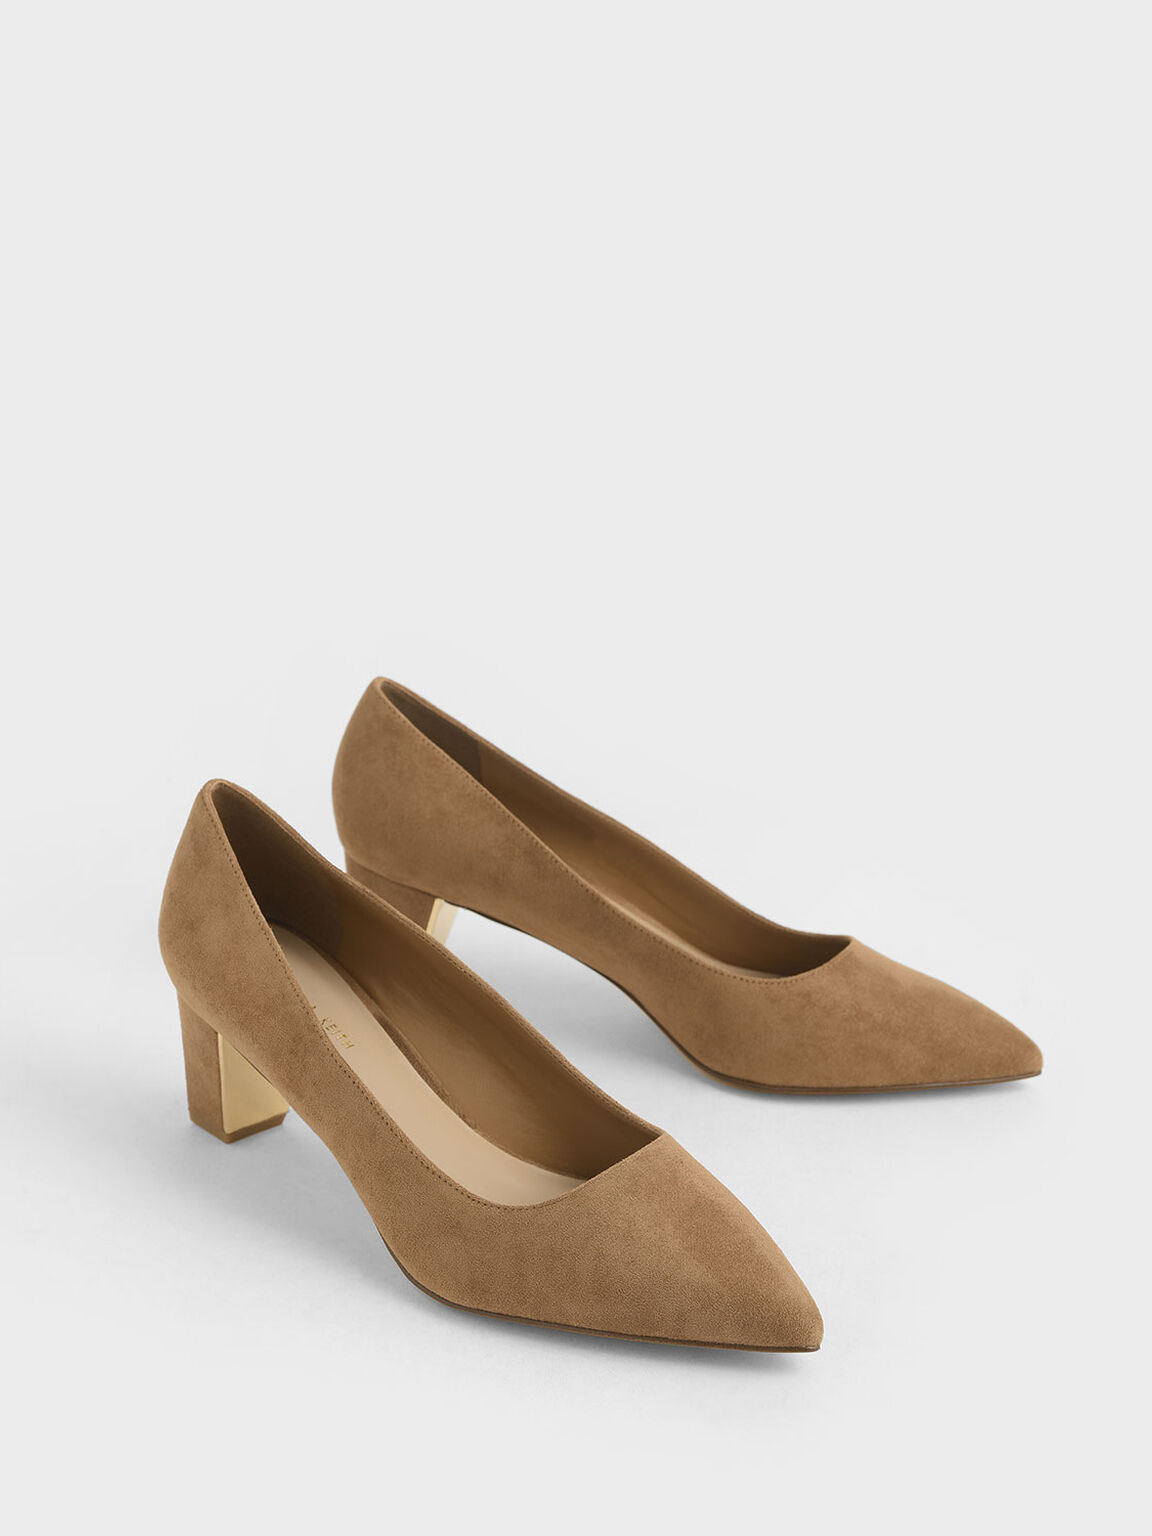 Textured Chunky Heel Pumps, Camel, hi-res